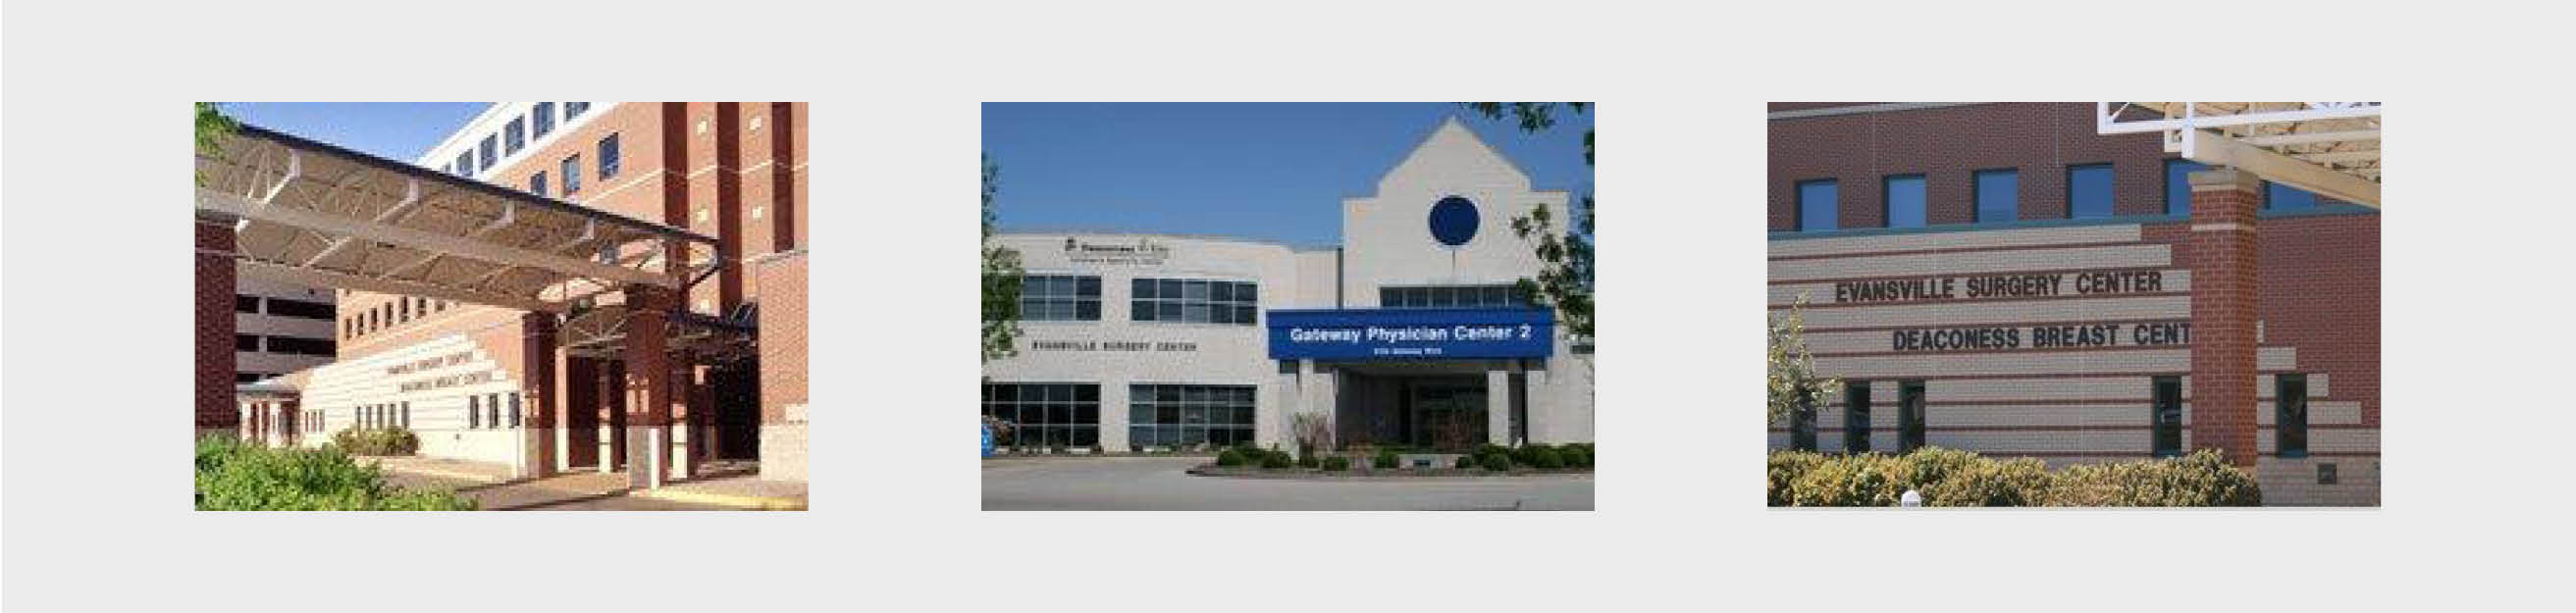 Evansville Surgery center Pictures